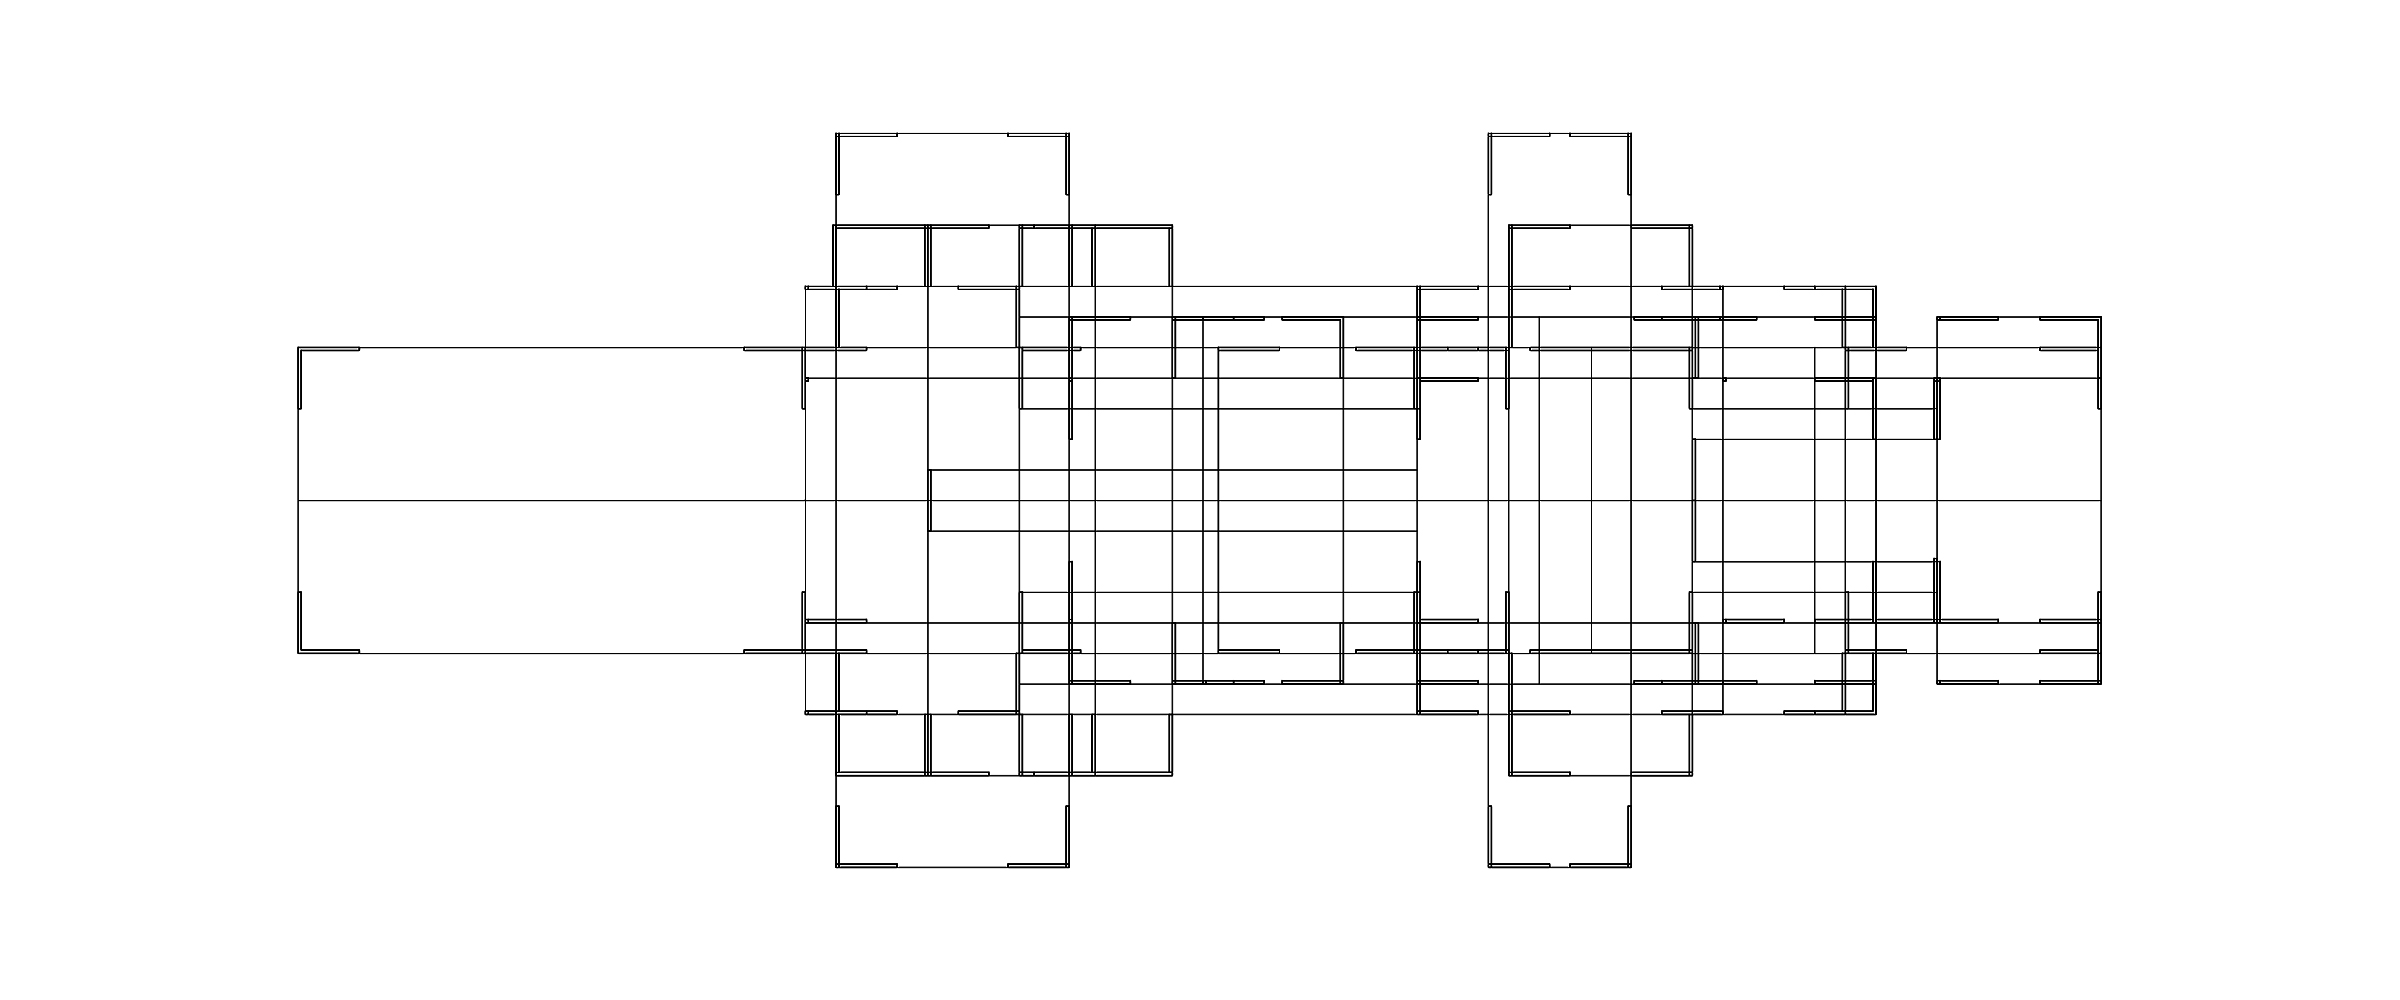 Mies Remix. Superimposed elevations